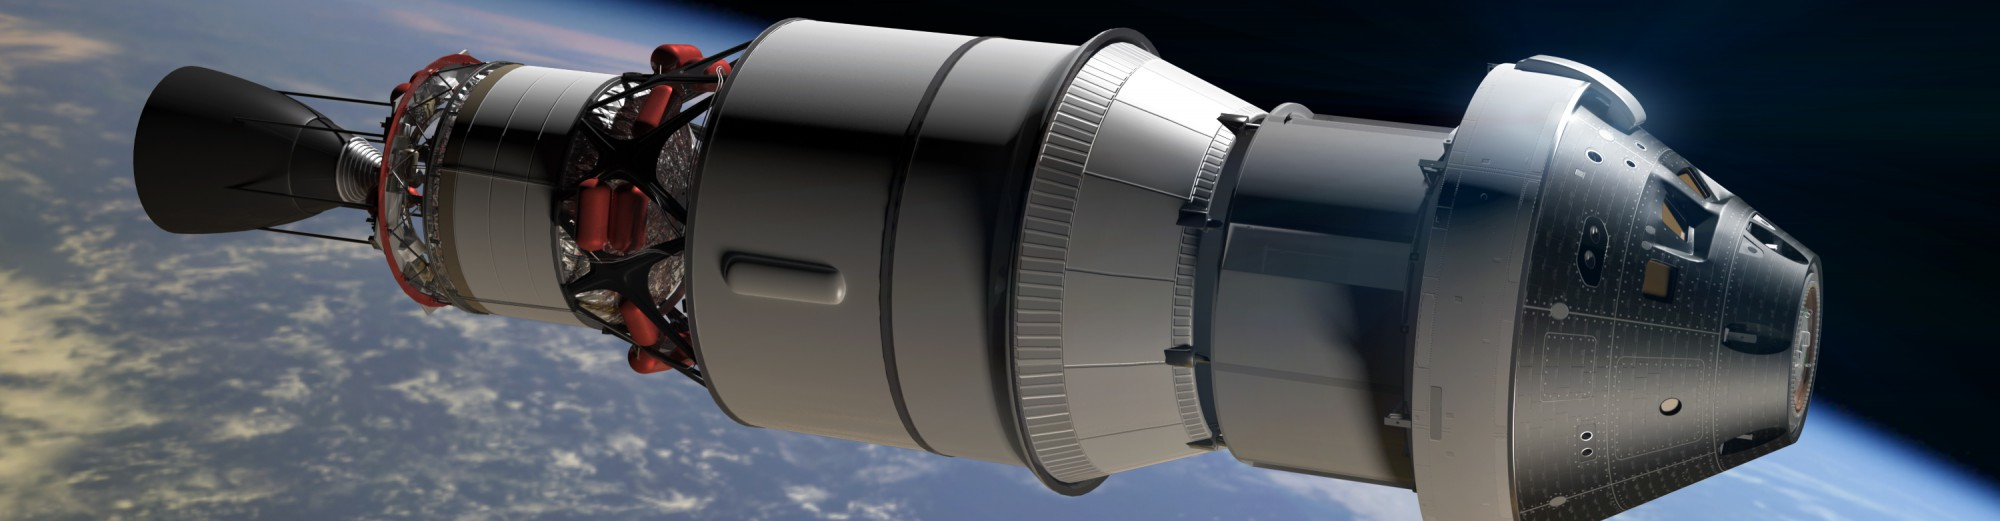 NASA Orion